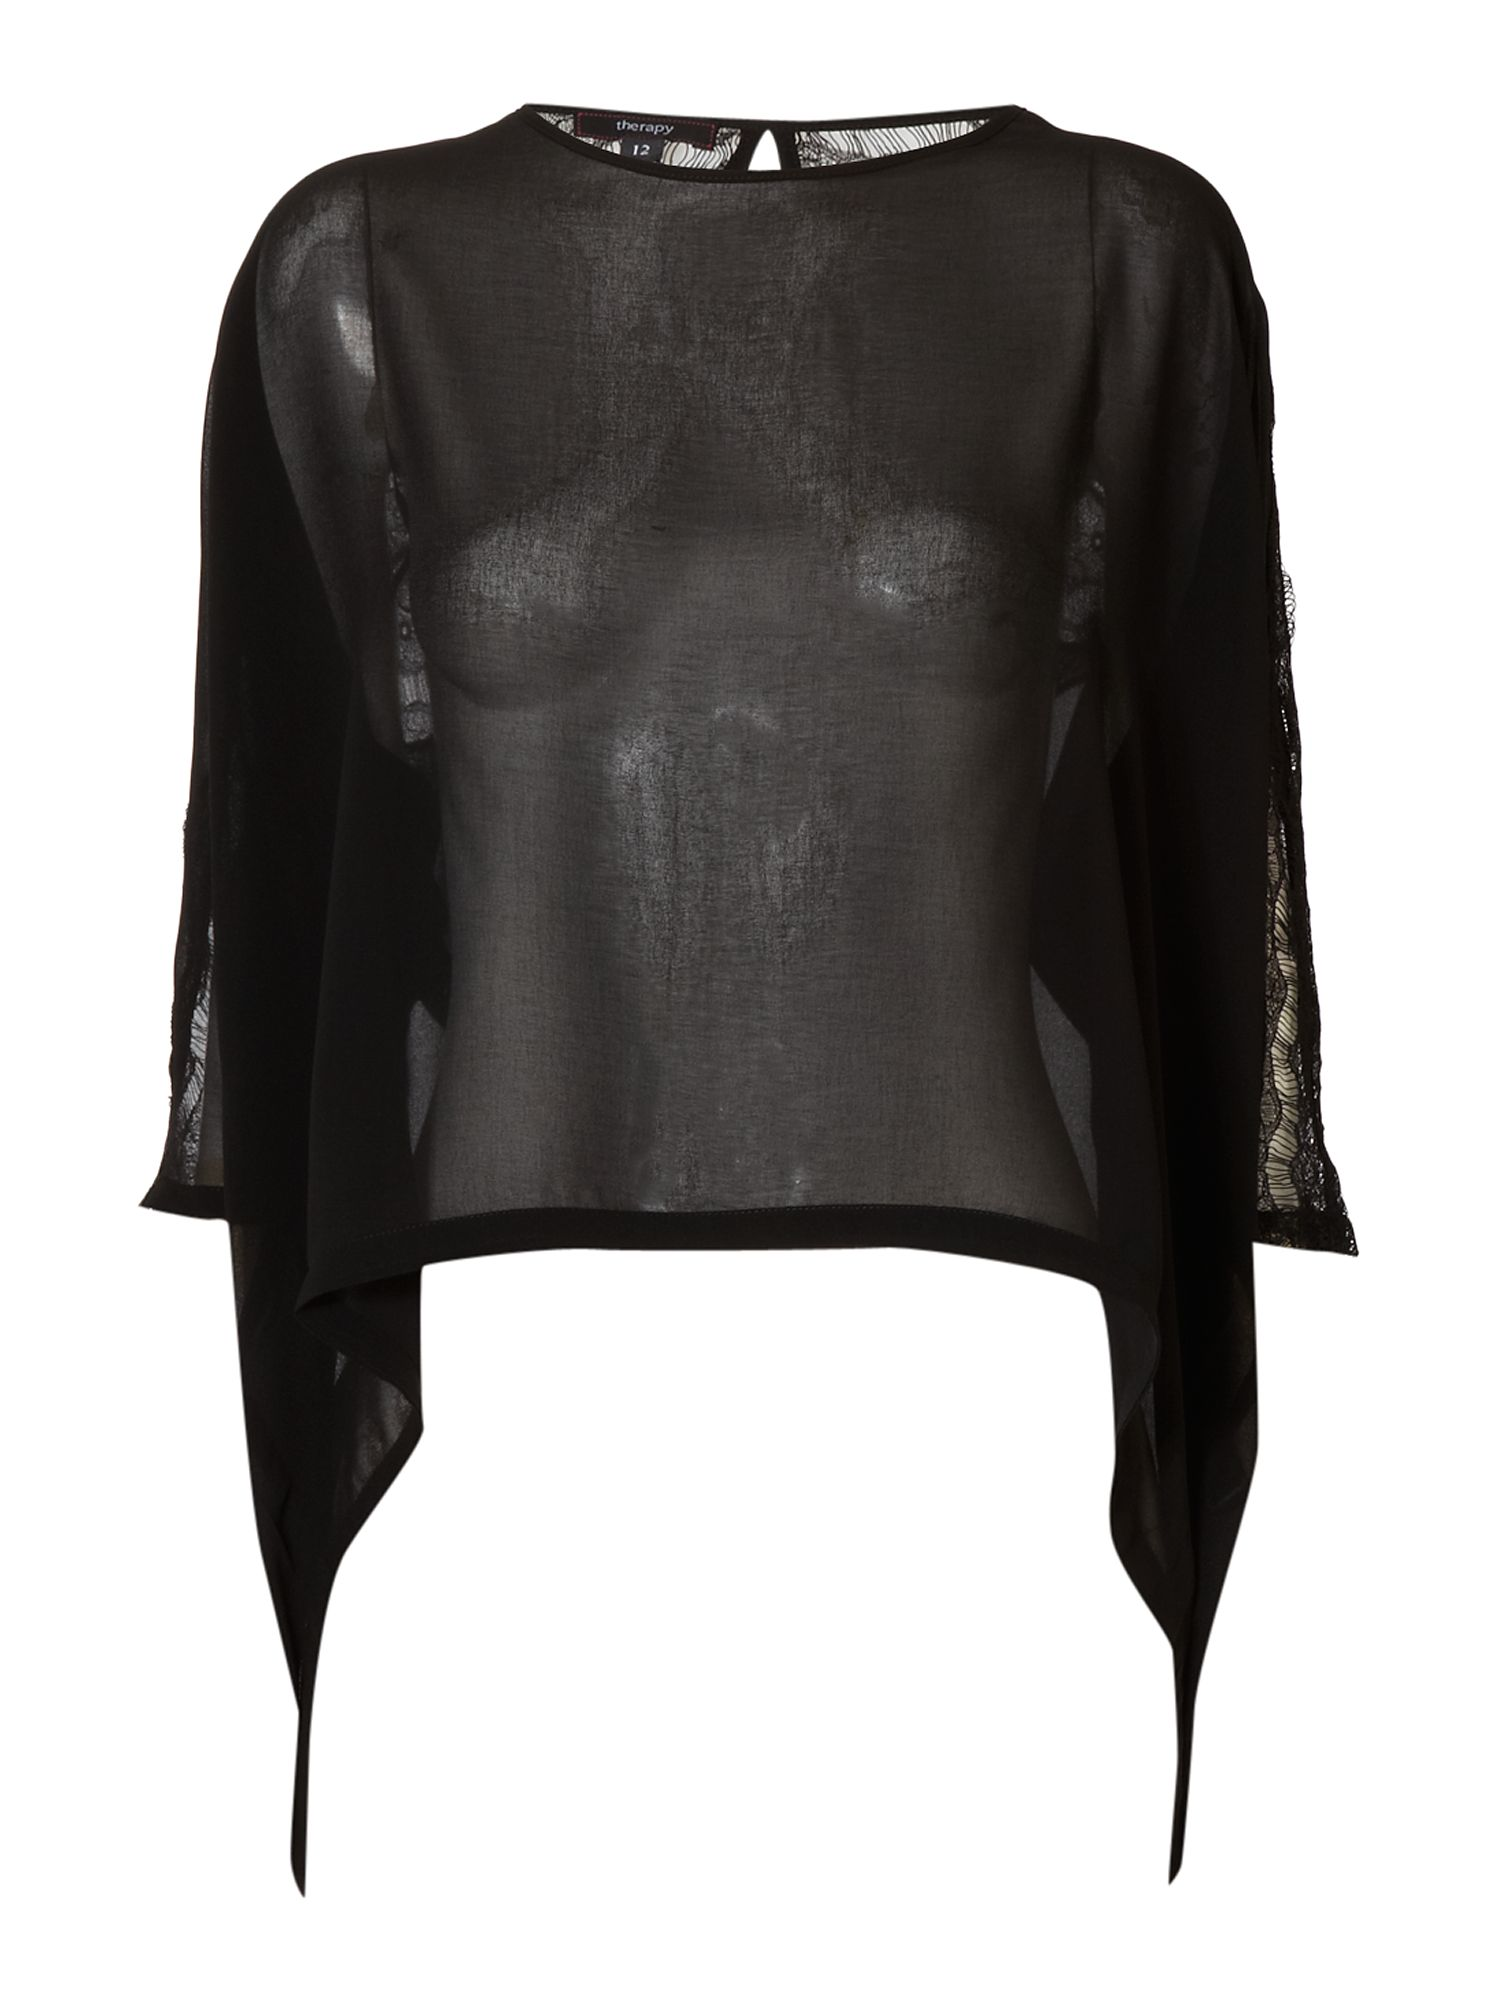 Therapy Lace detail sleeve blouse Black product image